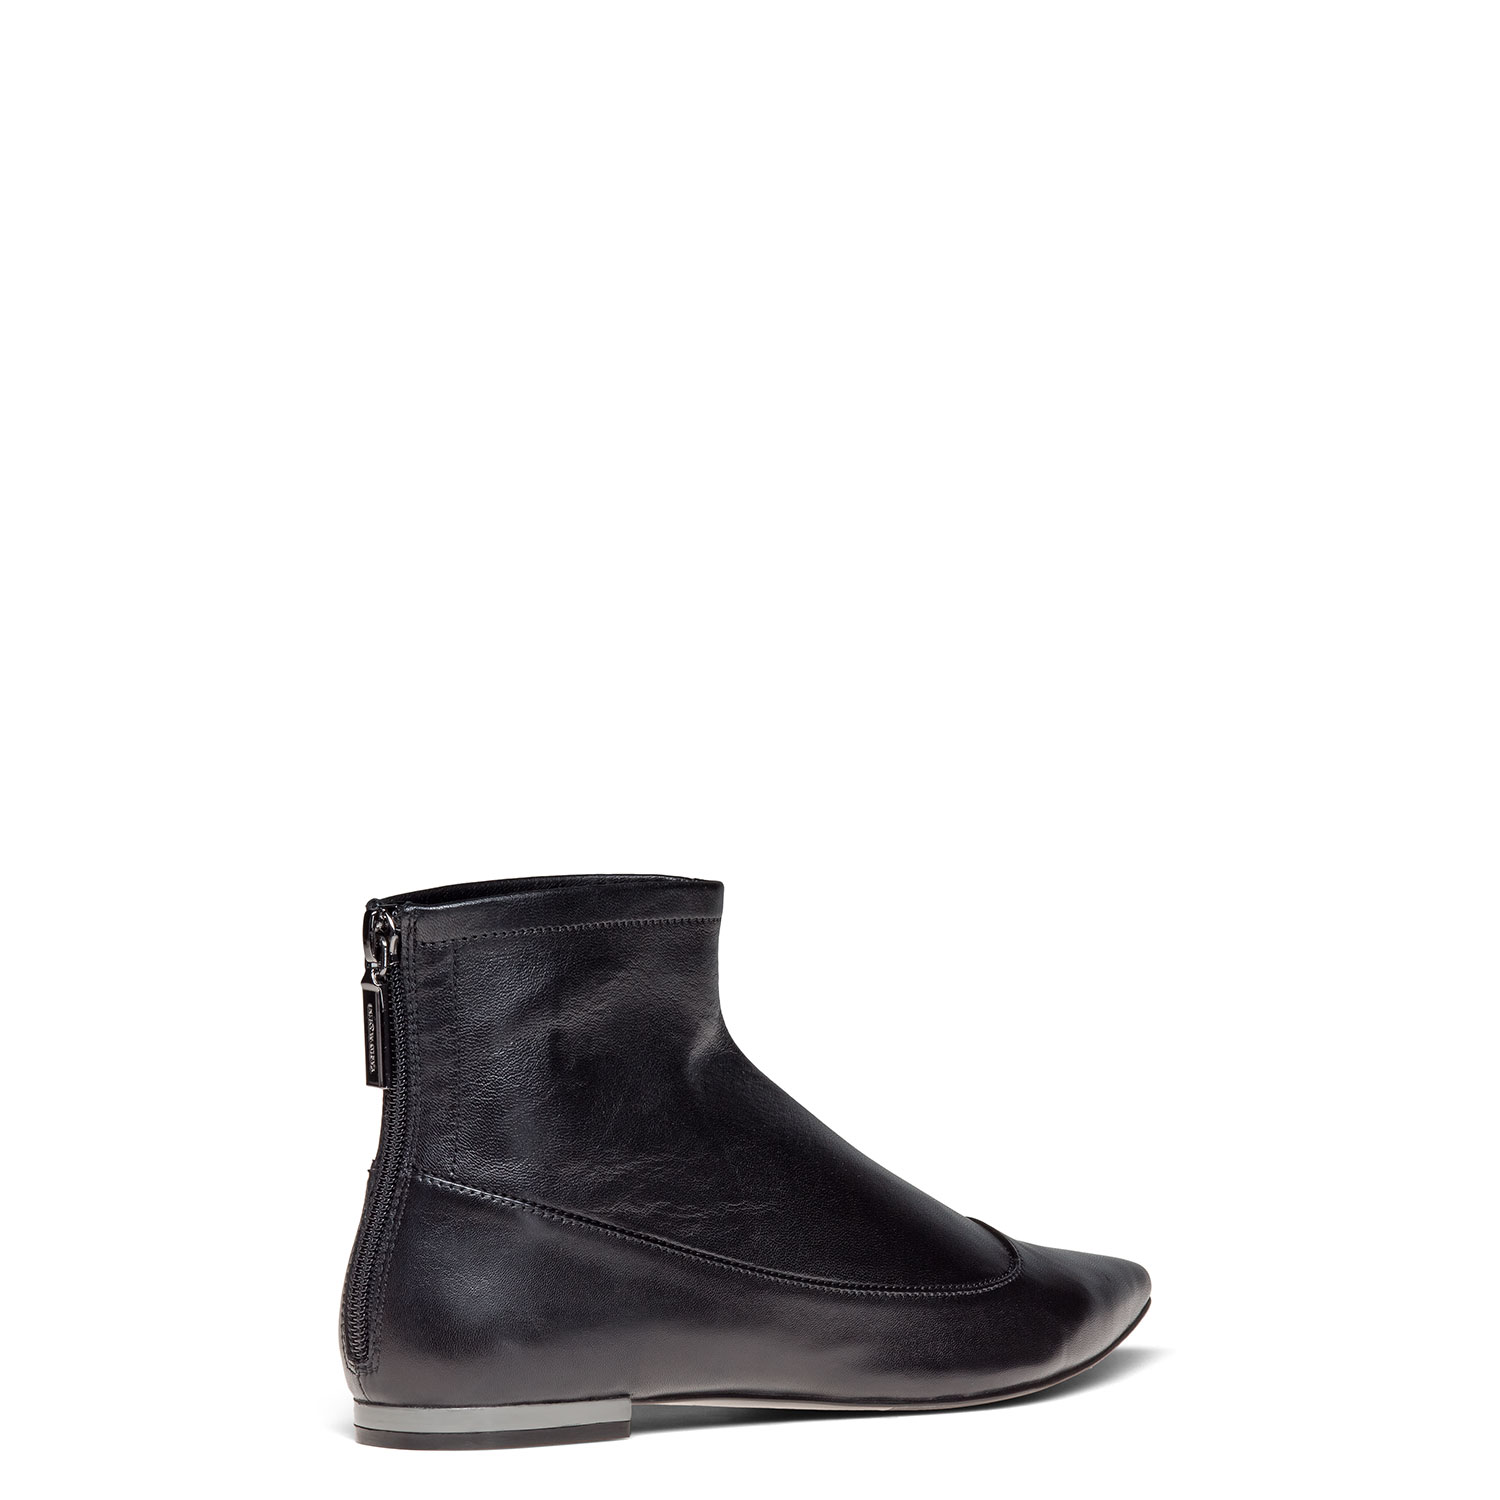 Women's ankle boots CARLO PAZOLINI YG-ZET13-1